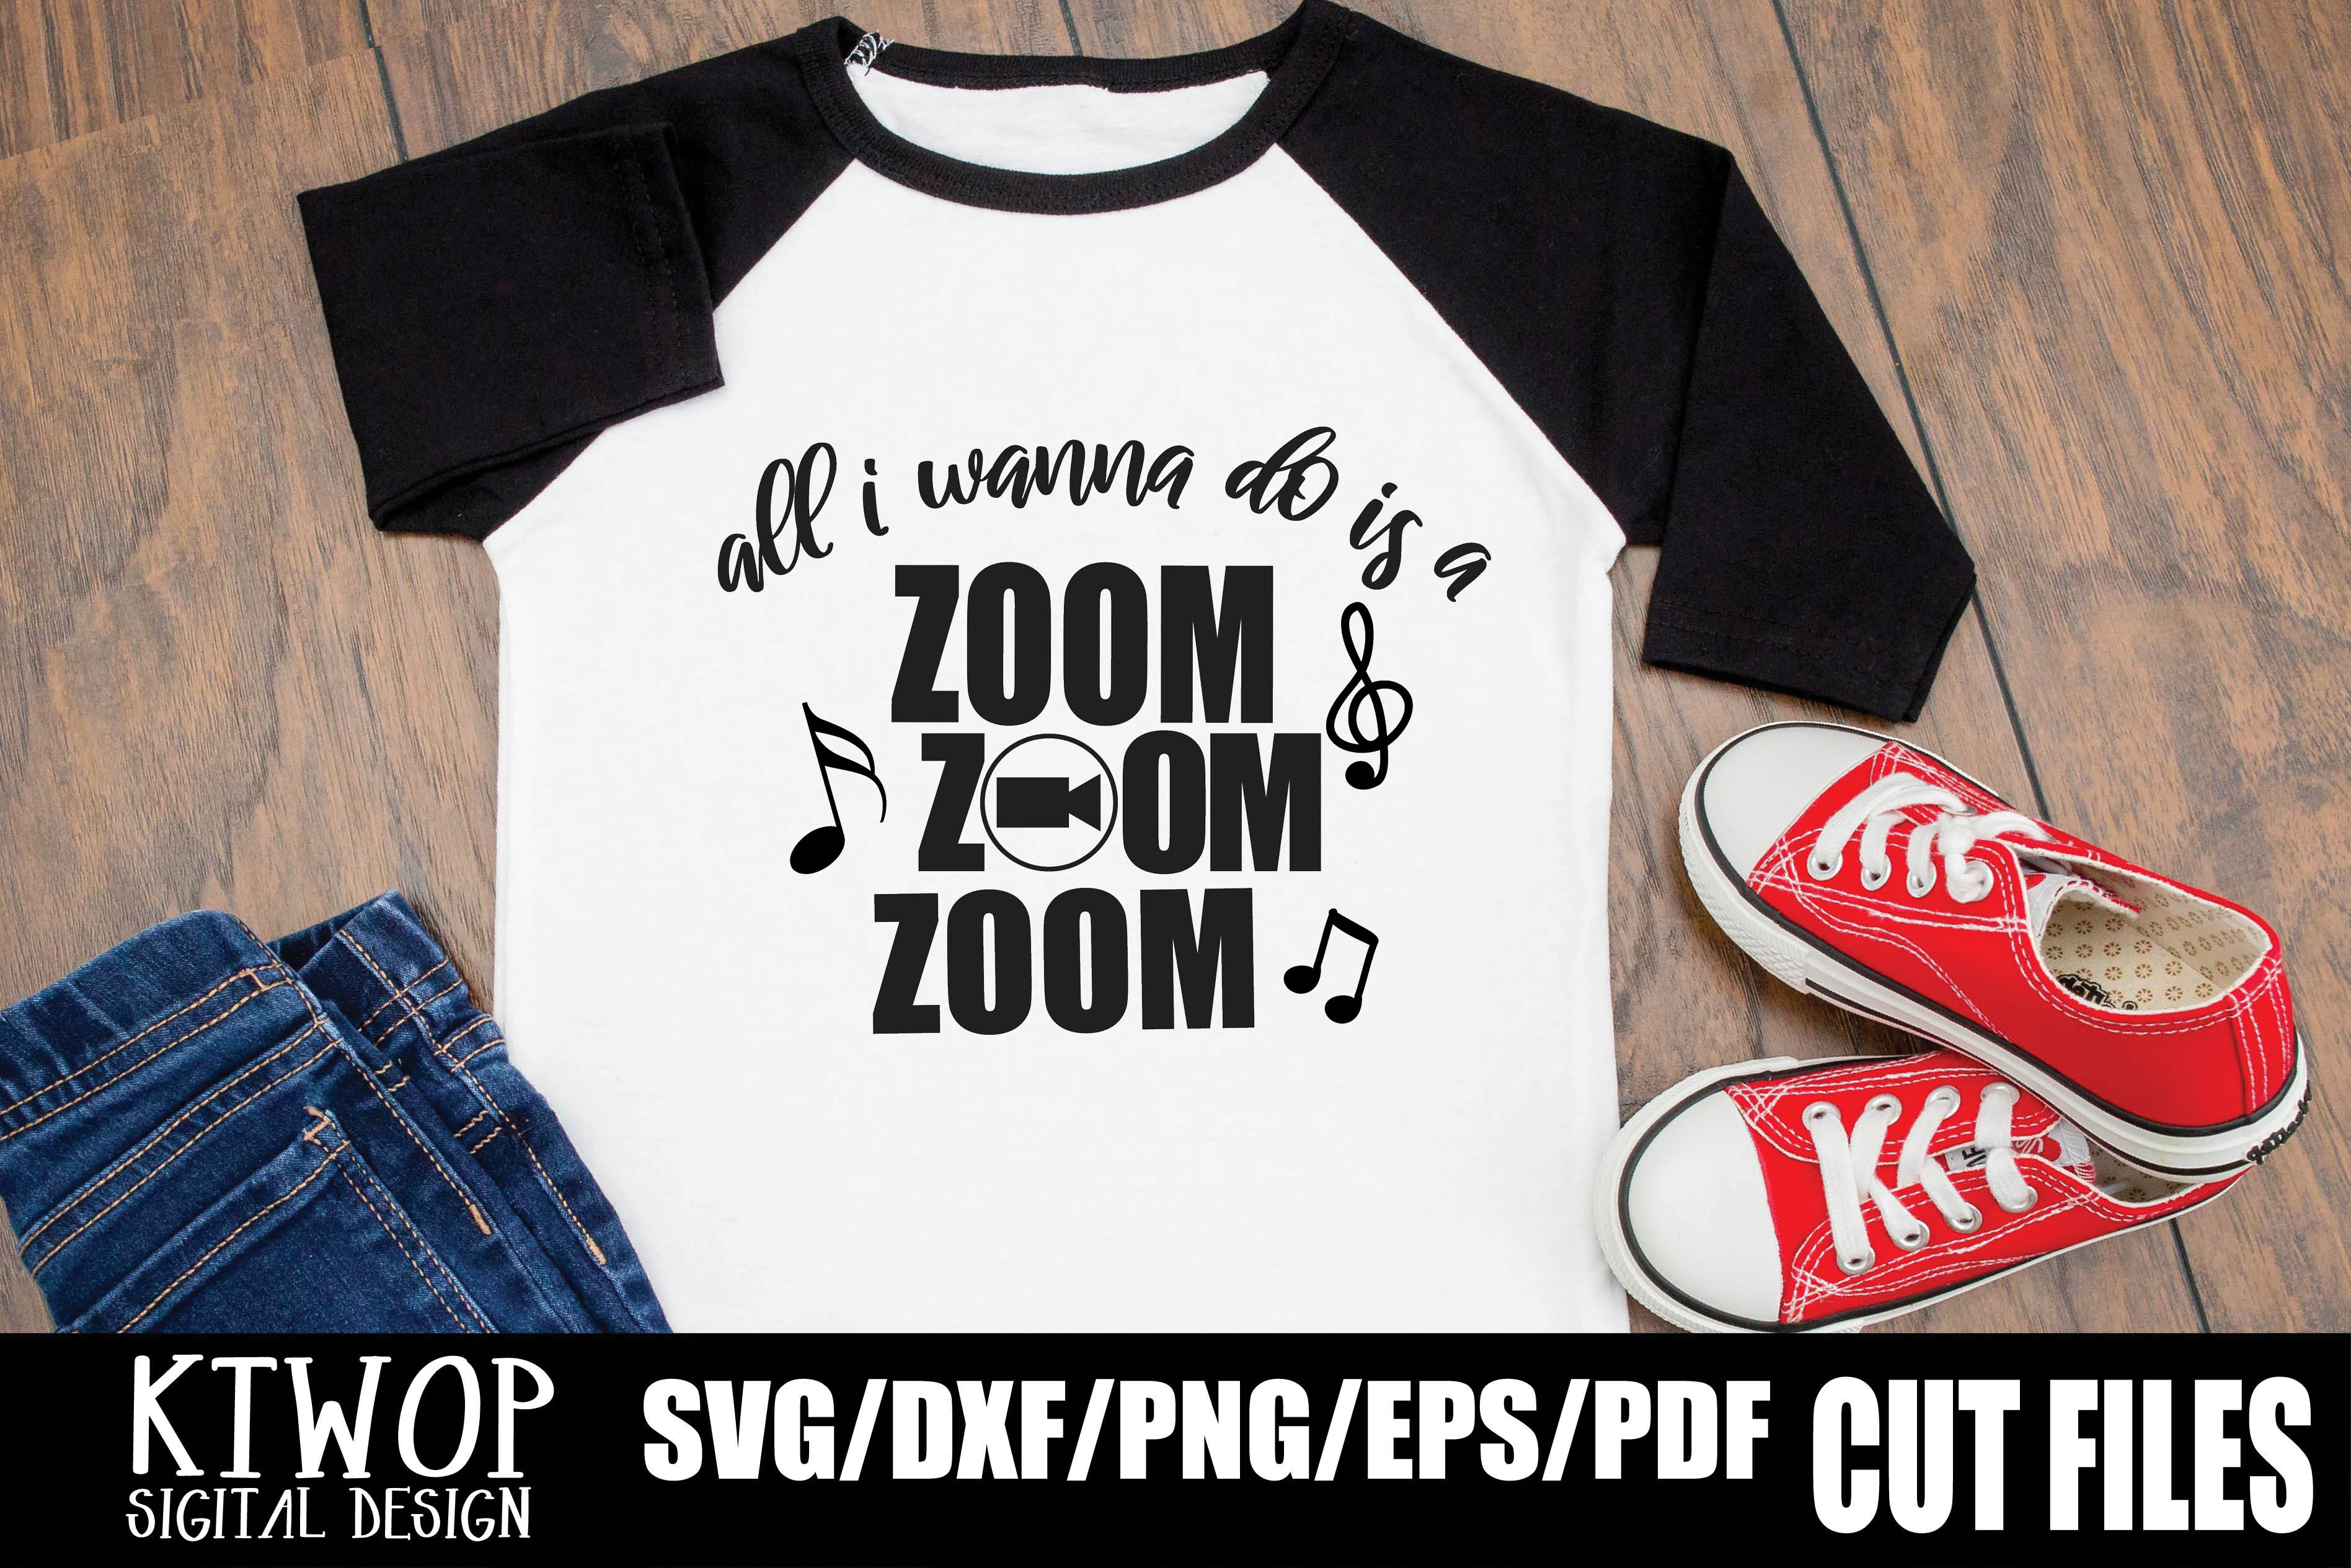 Download Free All I Wanna Do Is A Zoom Zoom Zoom Graphic By Ktwop Creative for Cricut Explore, Silhouette and other cutting machines.